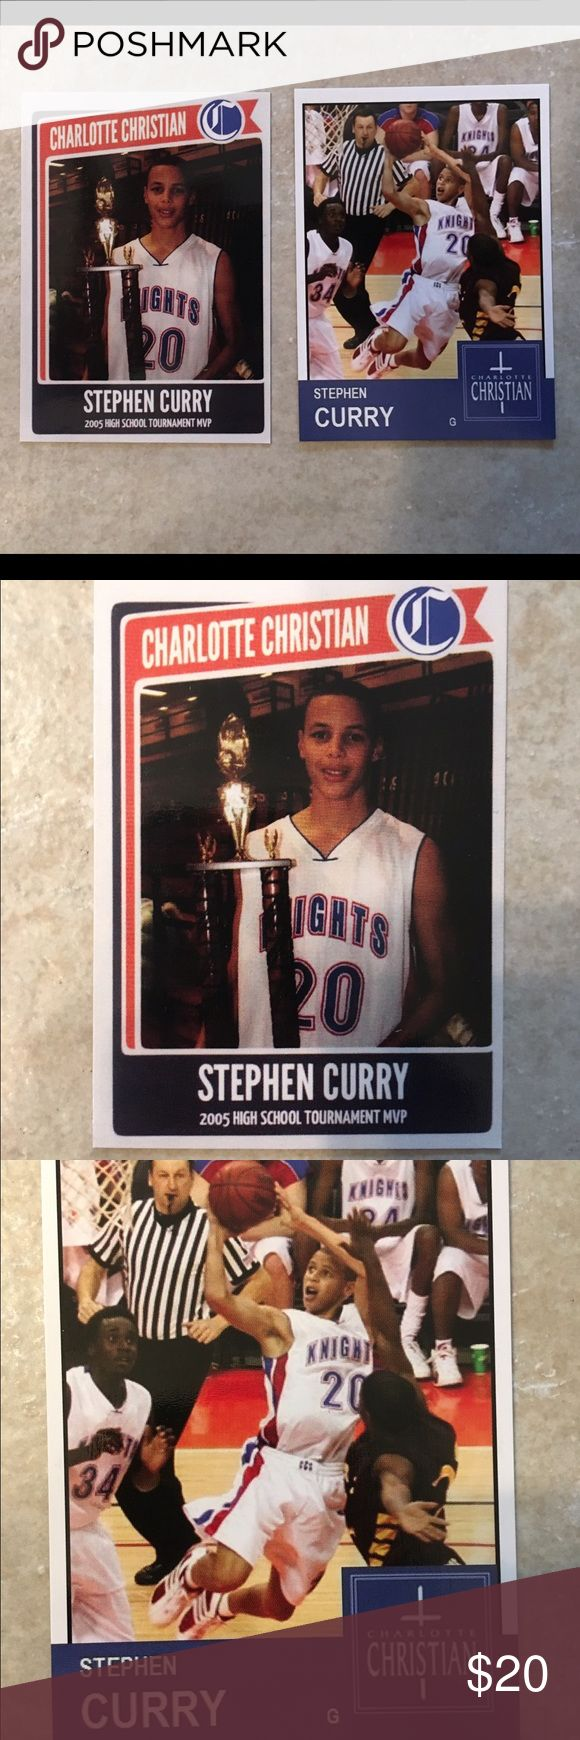 2 vintage Stephen Curry high school cards Great for the collector Accessories